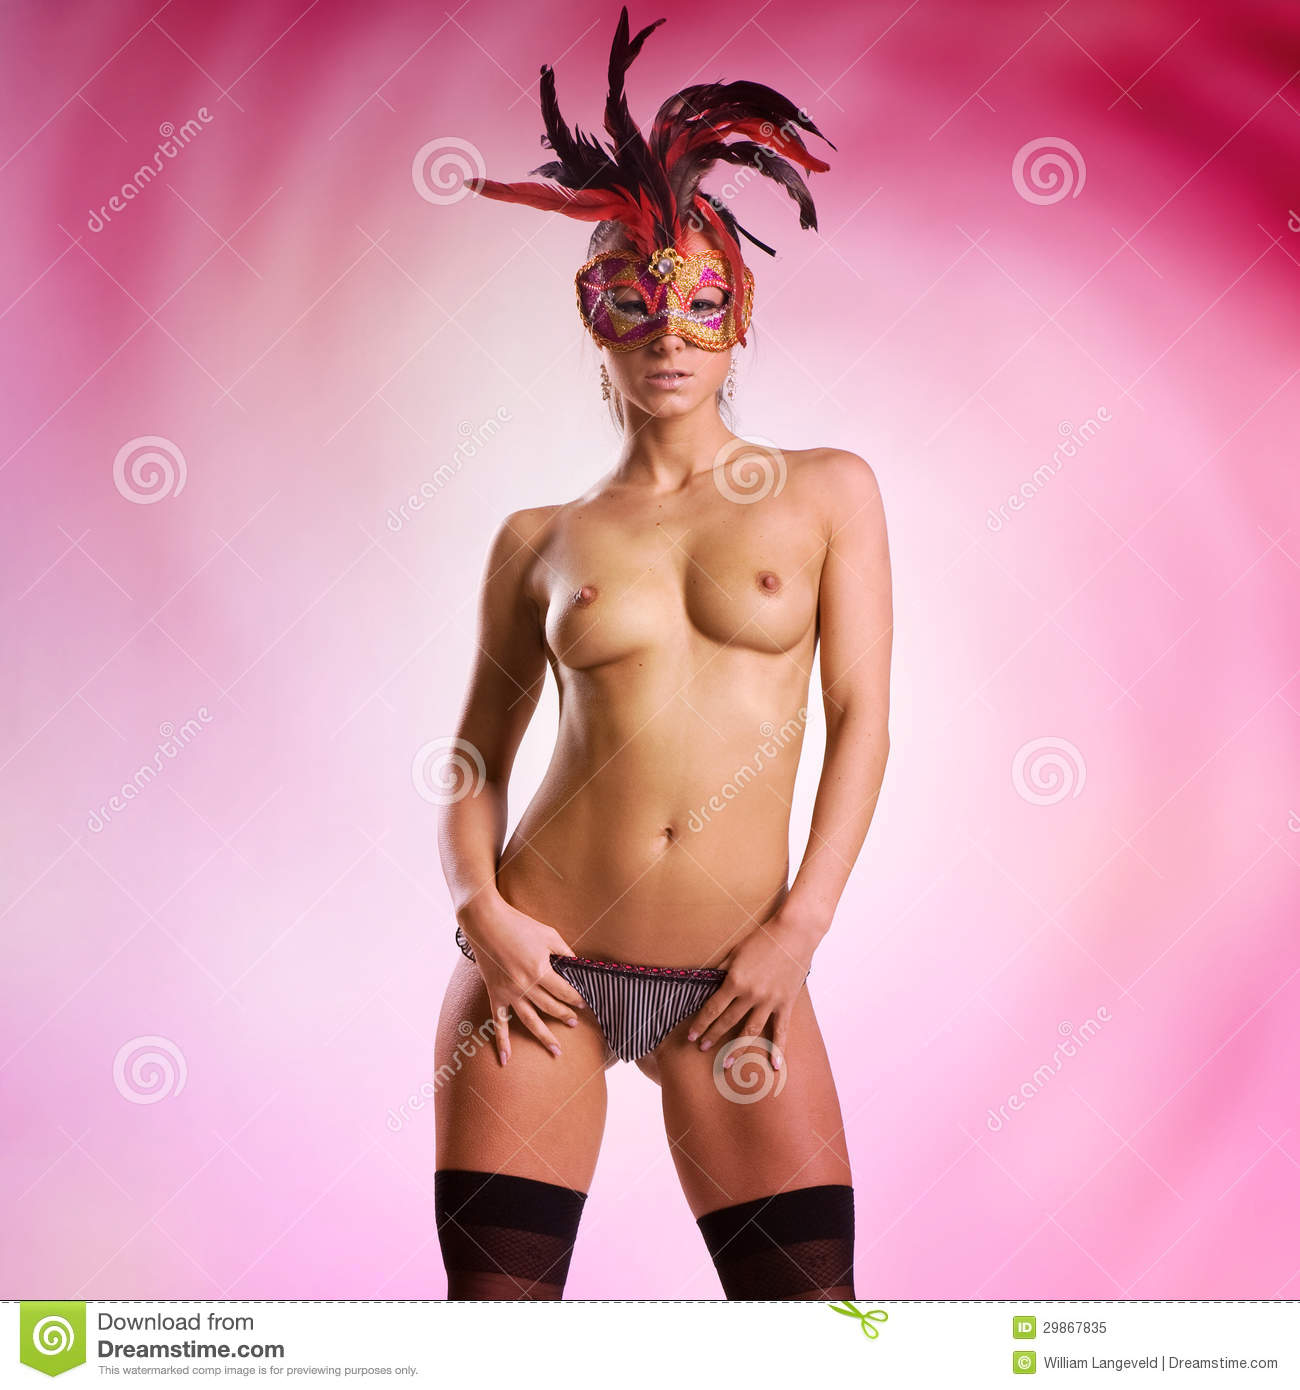 Consider, that Sexy naked women masks